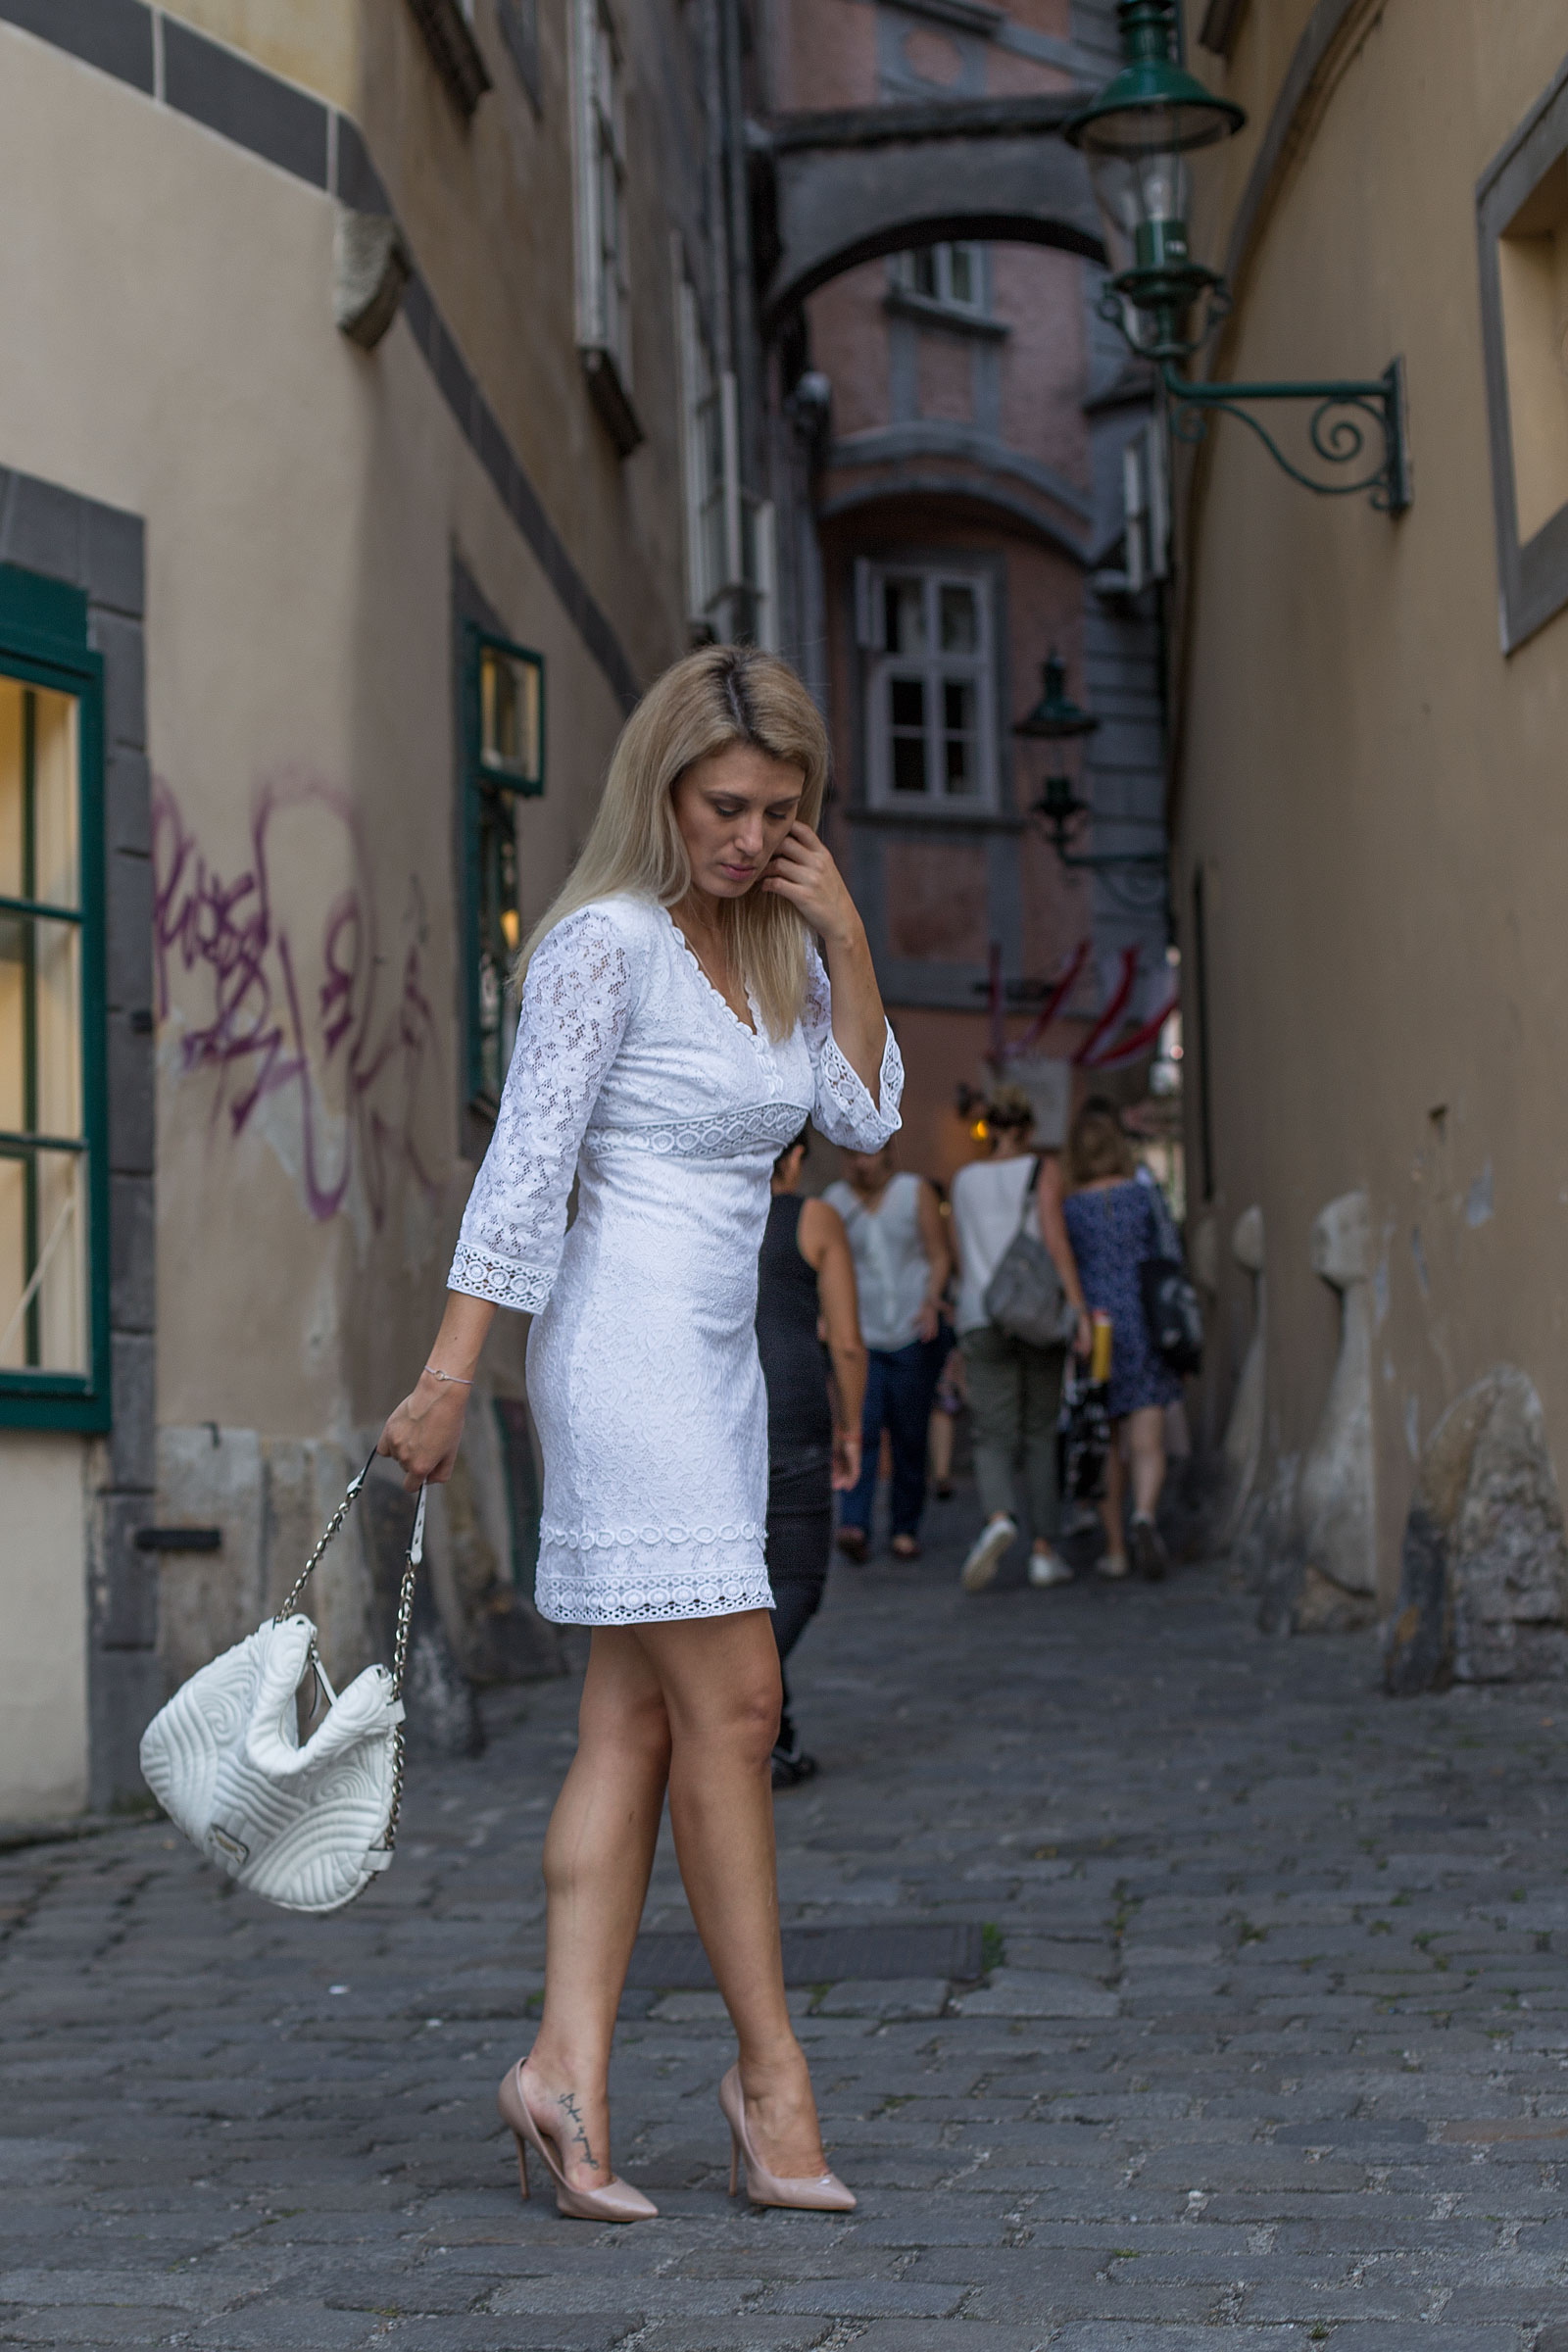 how-to-wear.lace-Foto_by_Nadja_Nemetz_Wien_Outfit_Fashion_Mode_Modeblogger_Blogger_qweiß_weiss_Spitzenkleid_Lace_dress_lacedress_how_to_wear_styleguide_guess_bag_tasche_highheels_high_heels_nude_buffalo_4